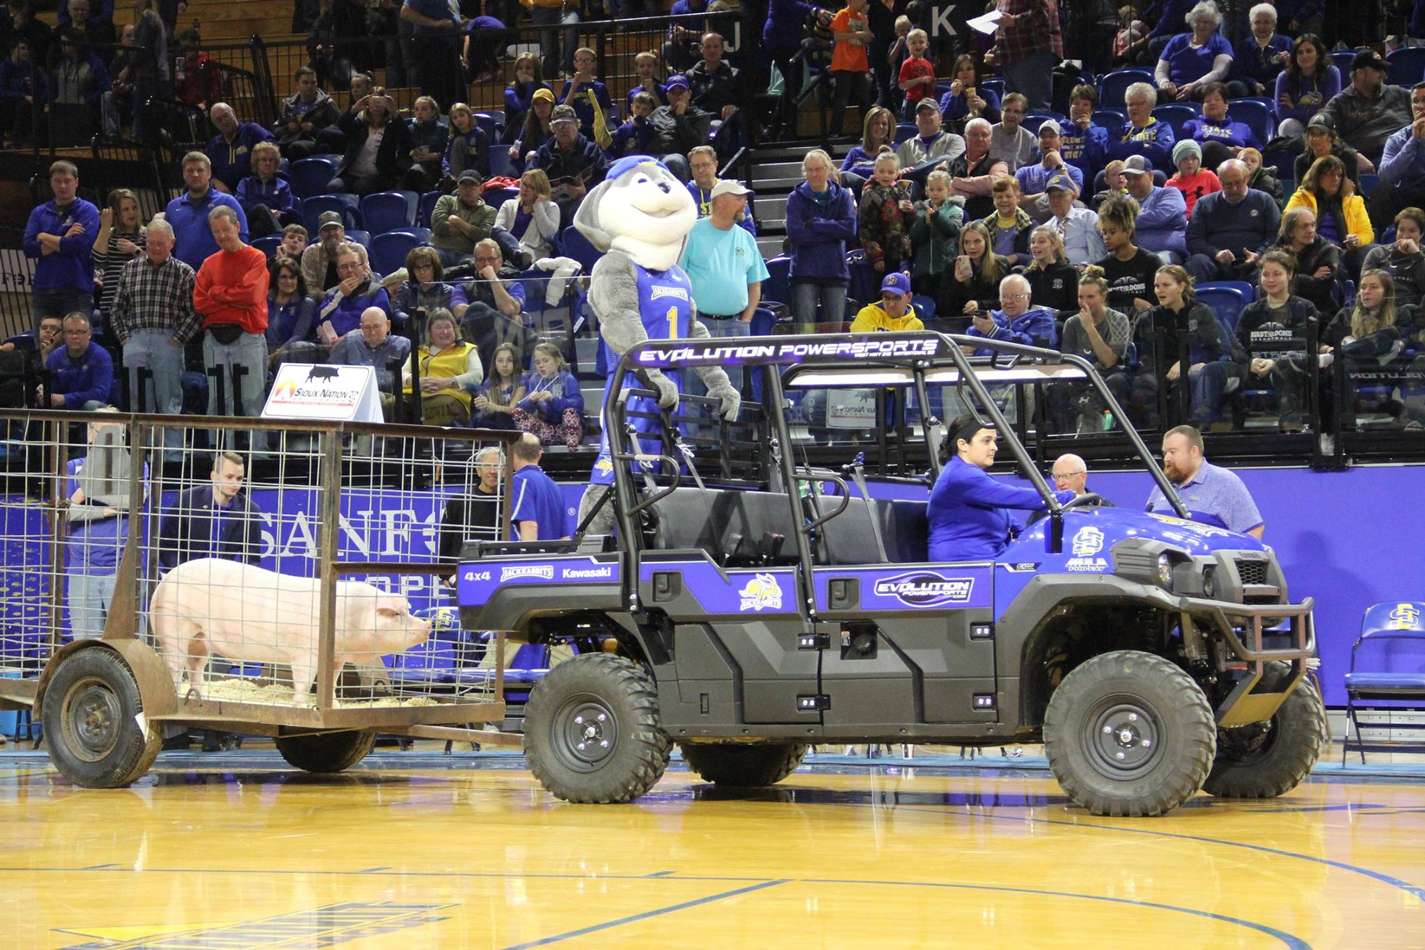 Live hog being auctioned in Frost Arena